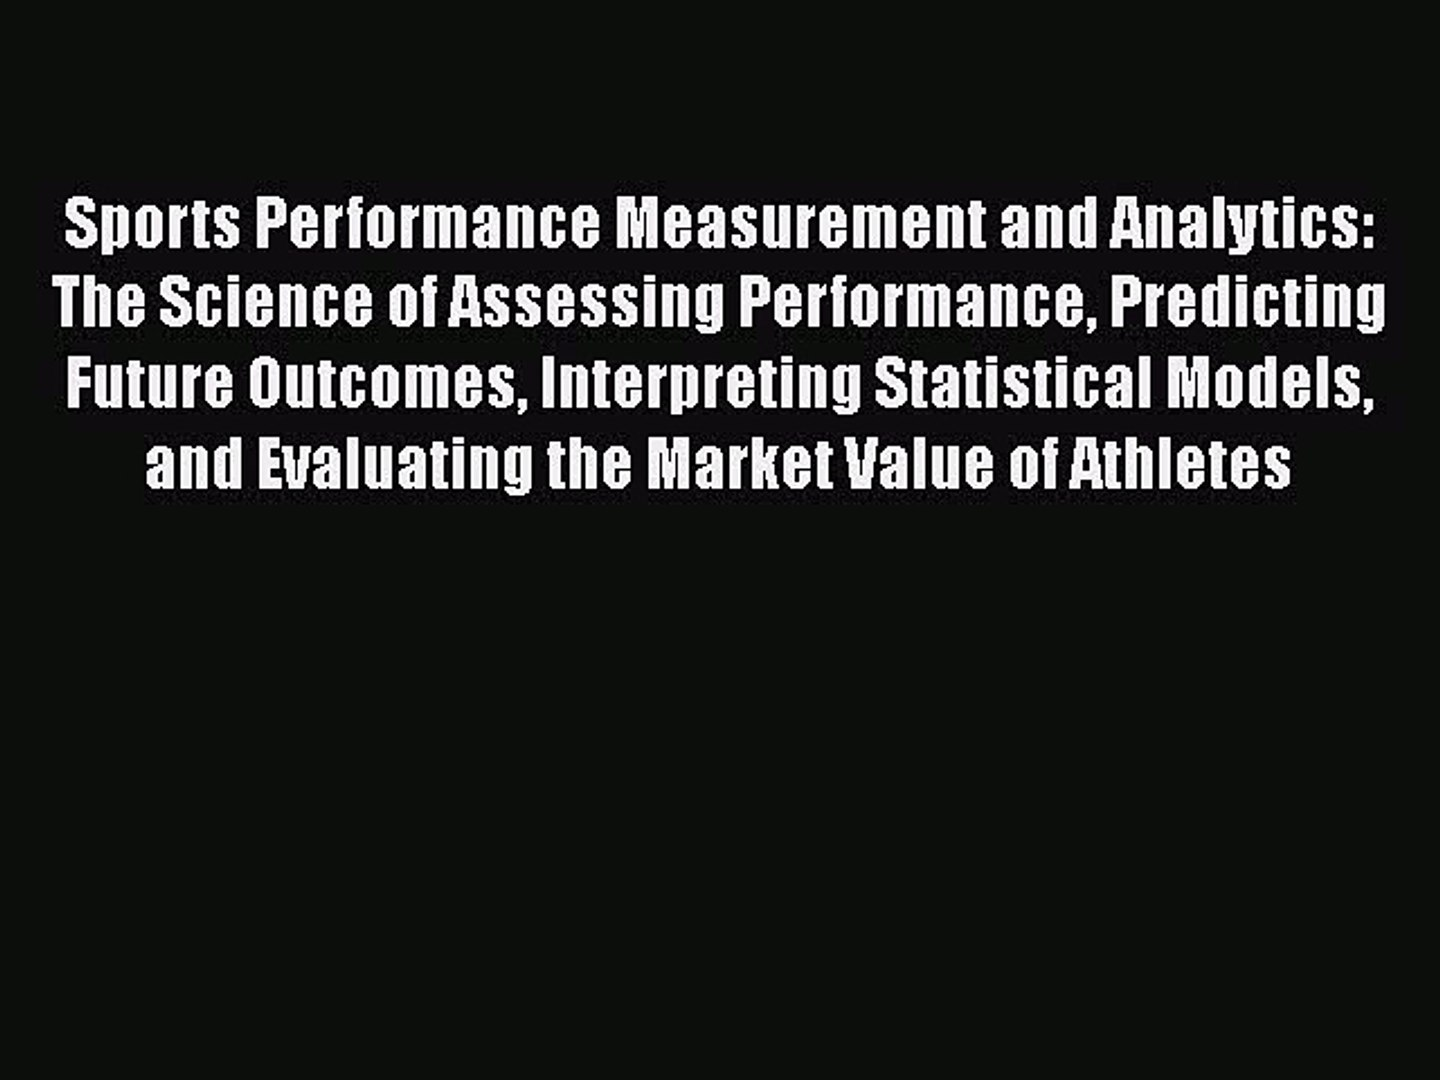 Sports Performance Measurement and Analytics: The Science of Assessing Performance Predicting Future Outcomes and Evaluating the Market Value of Athletes Interpreting Statistical Models